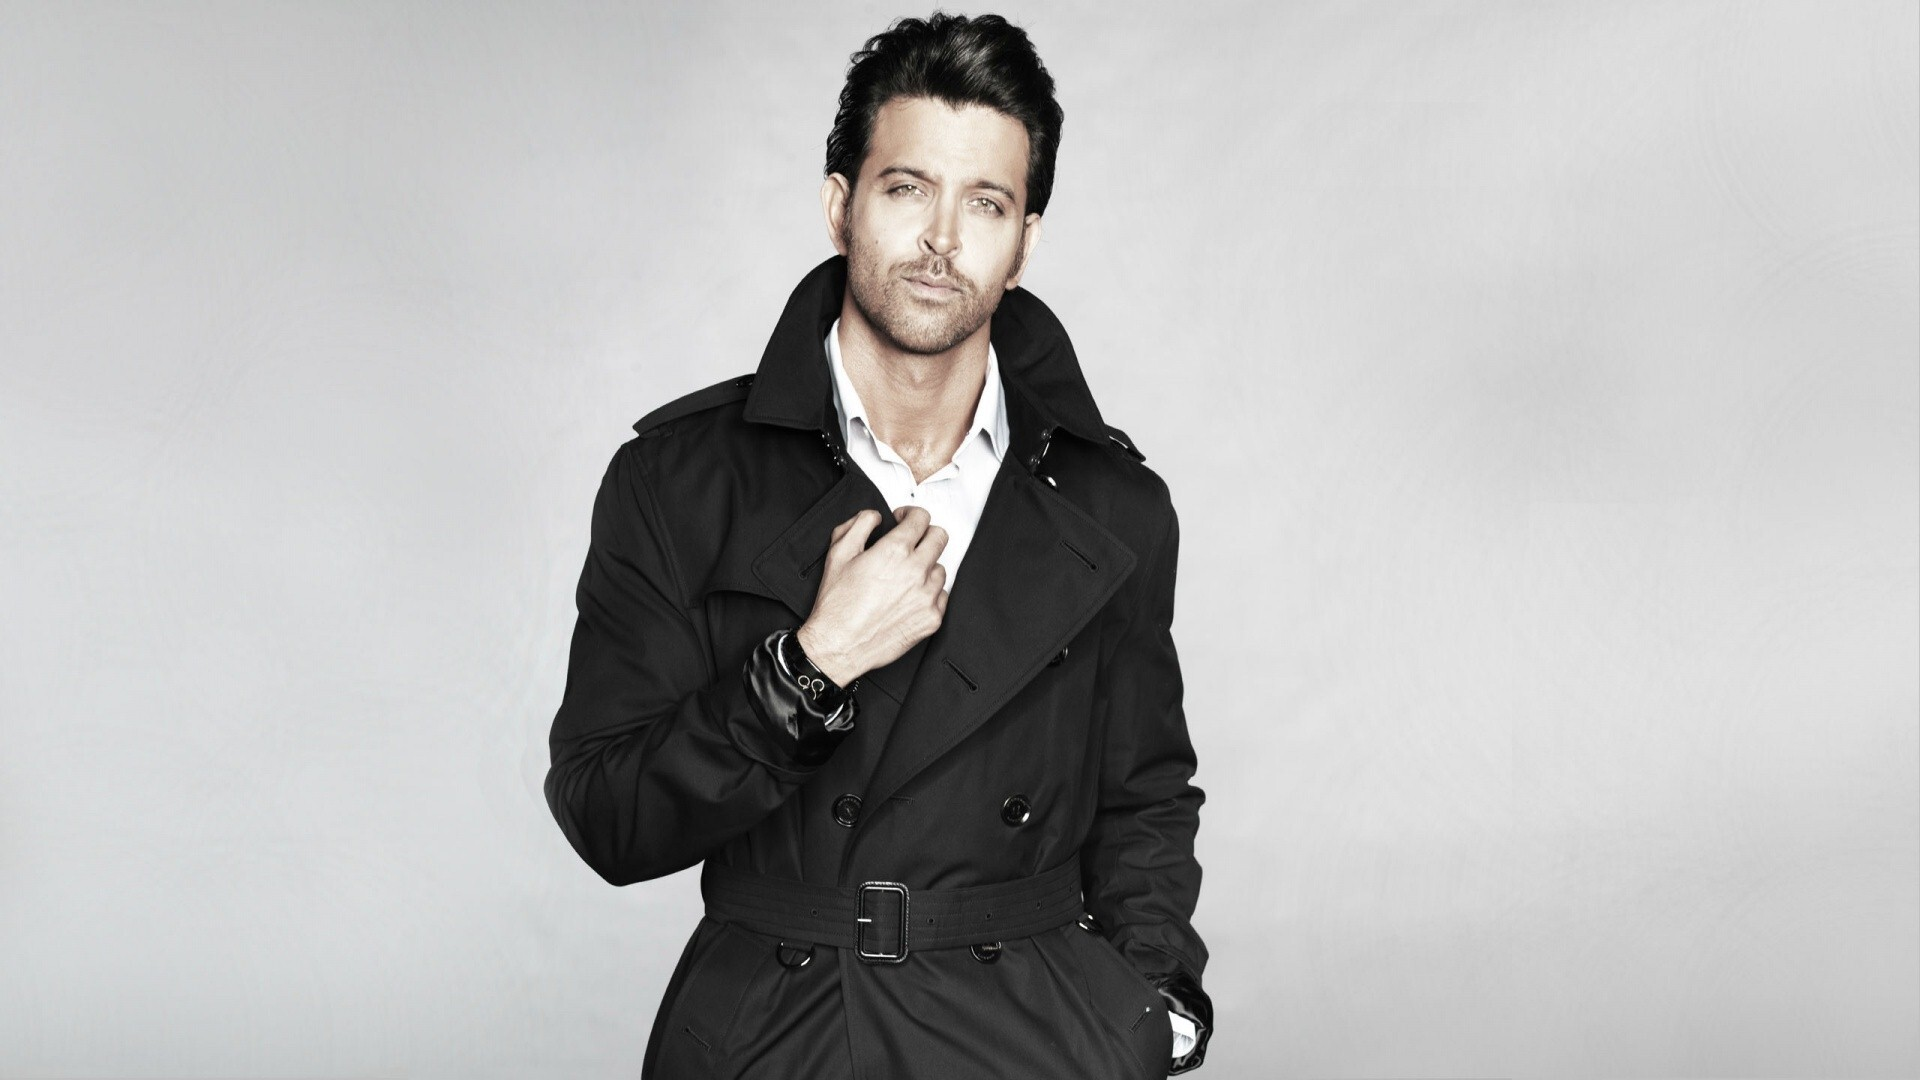 Indian actor hrithik roshan image hd wallpapers - Hrithik hd pic ...